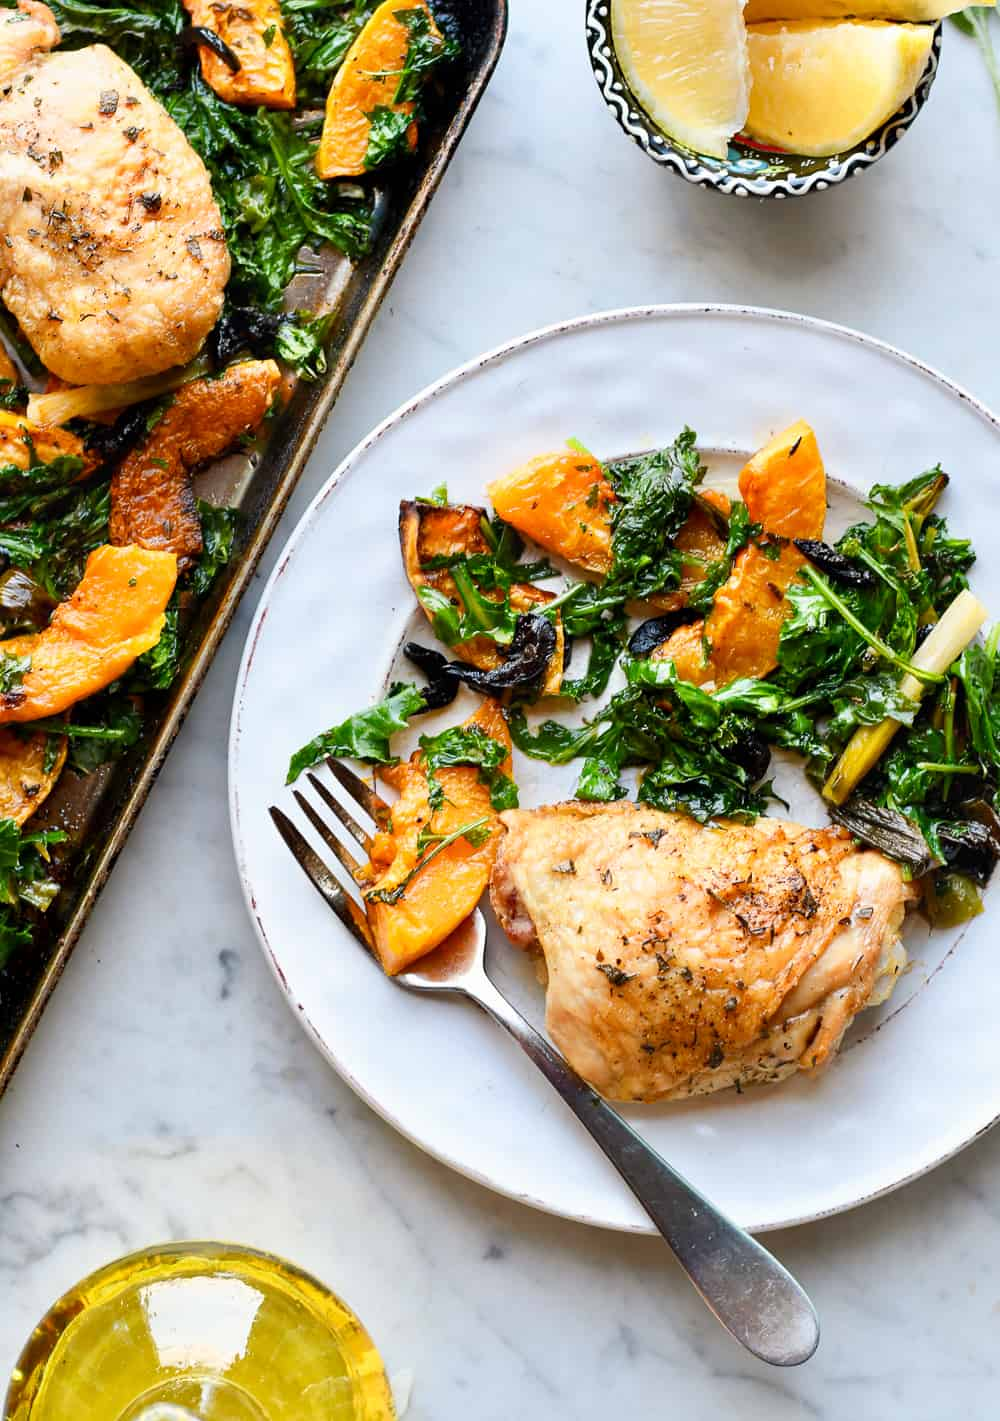 Sheet Pan Chicken with Butternut Squash and Kale one plate